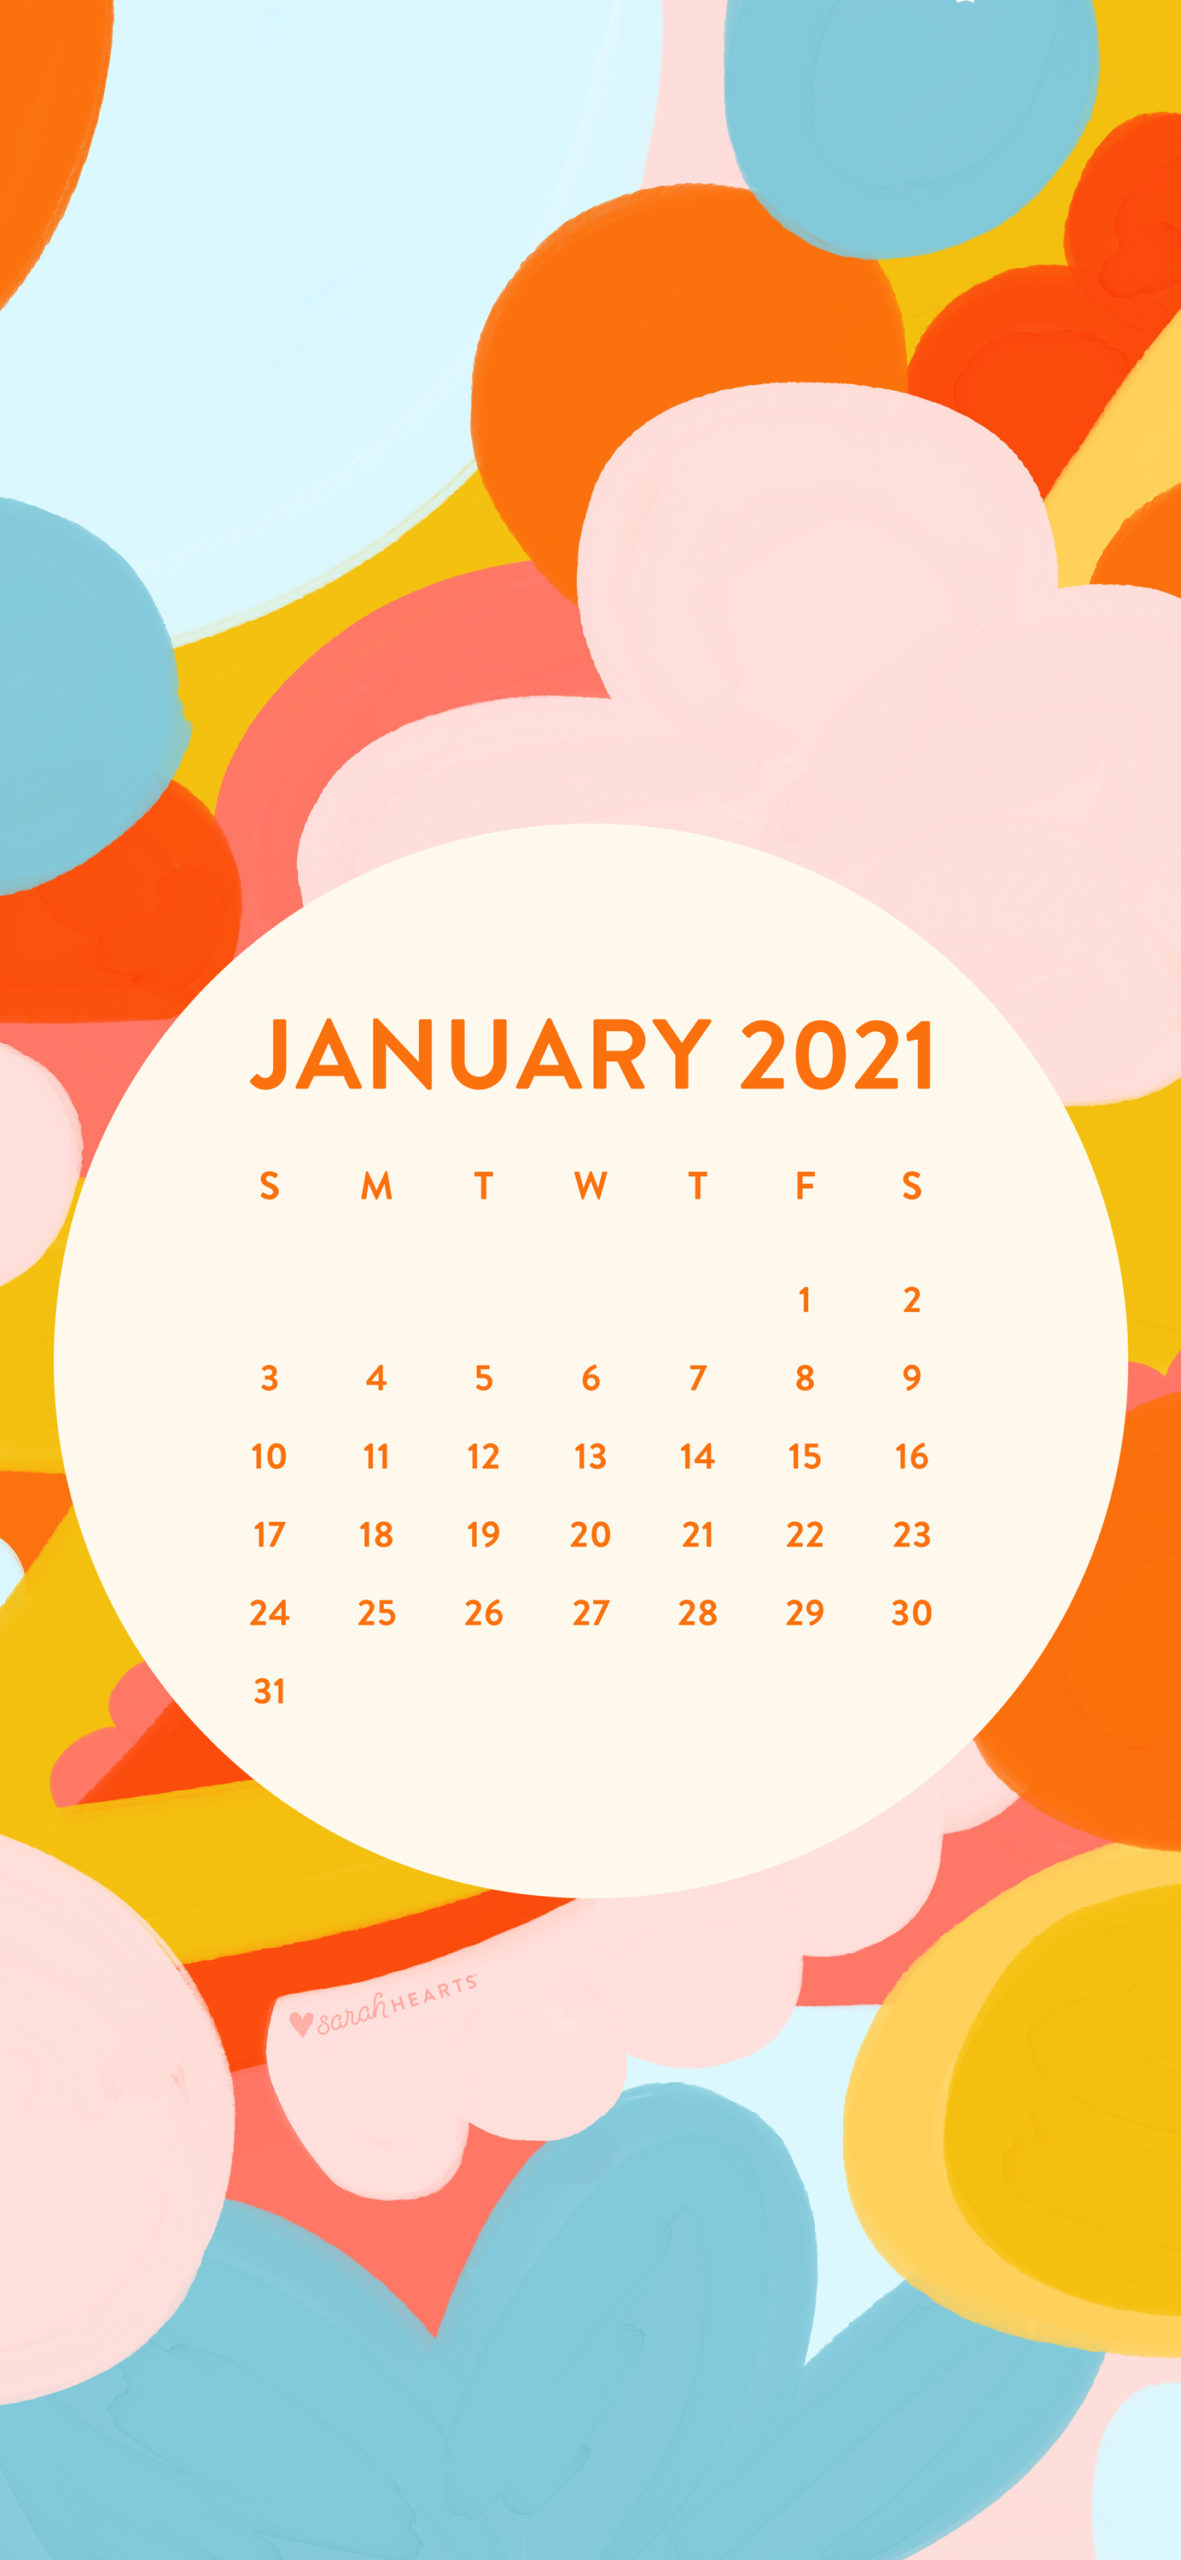 January 2021 Calendar Wallpaper Sarah Hearts